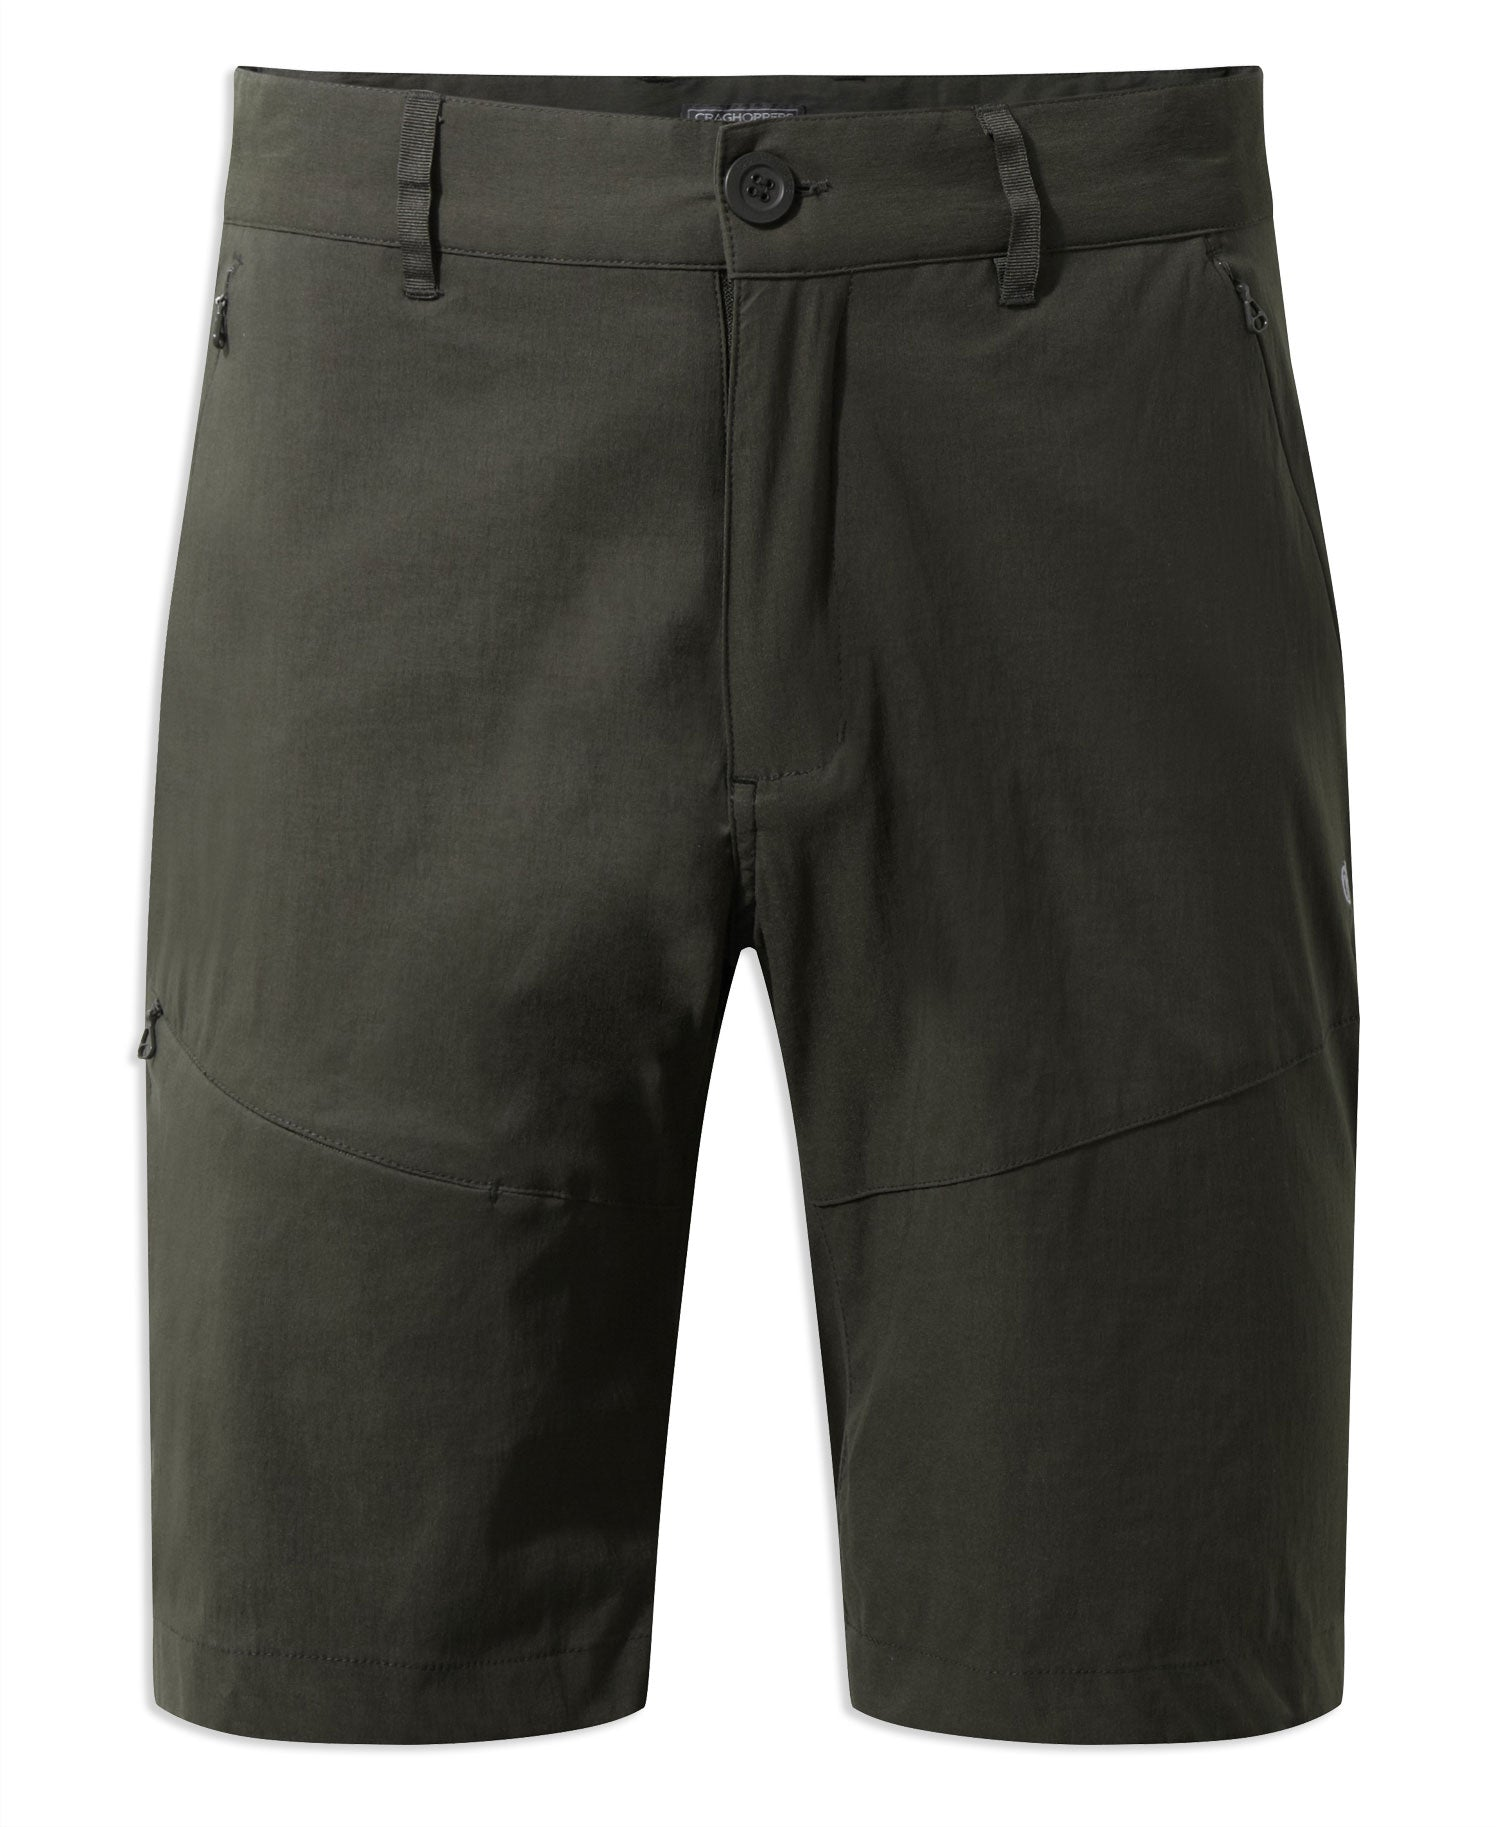 walking Craghoppers Kiwi Pro Shorts